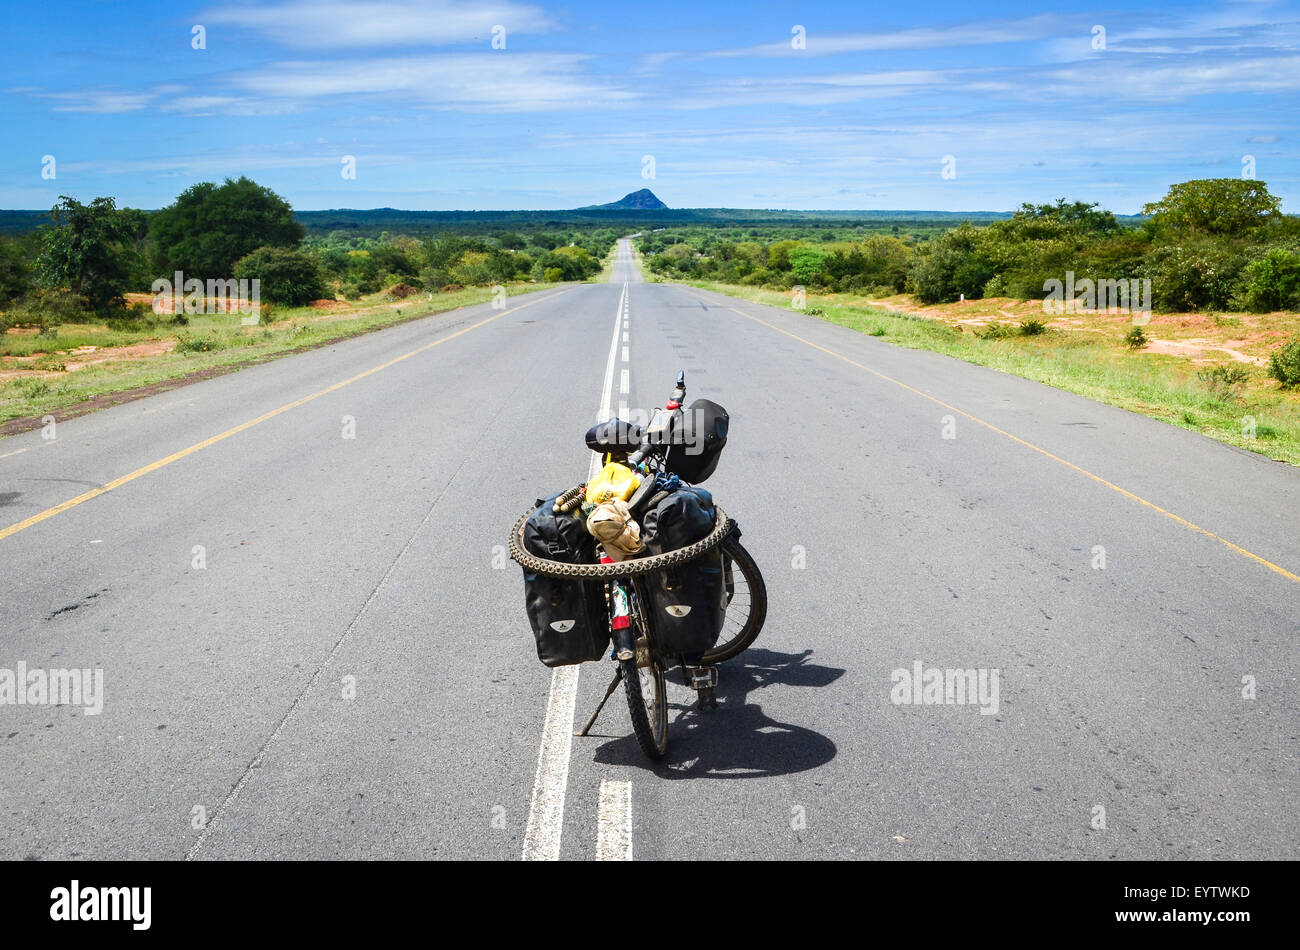 Cycle touring auf den Teer Straßen in Angola, Provinz Huila Stockfoto